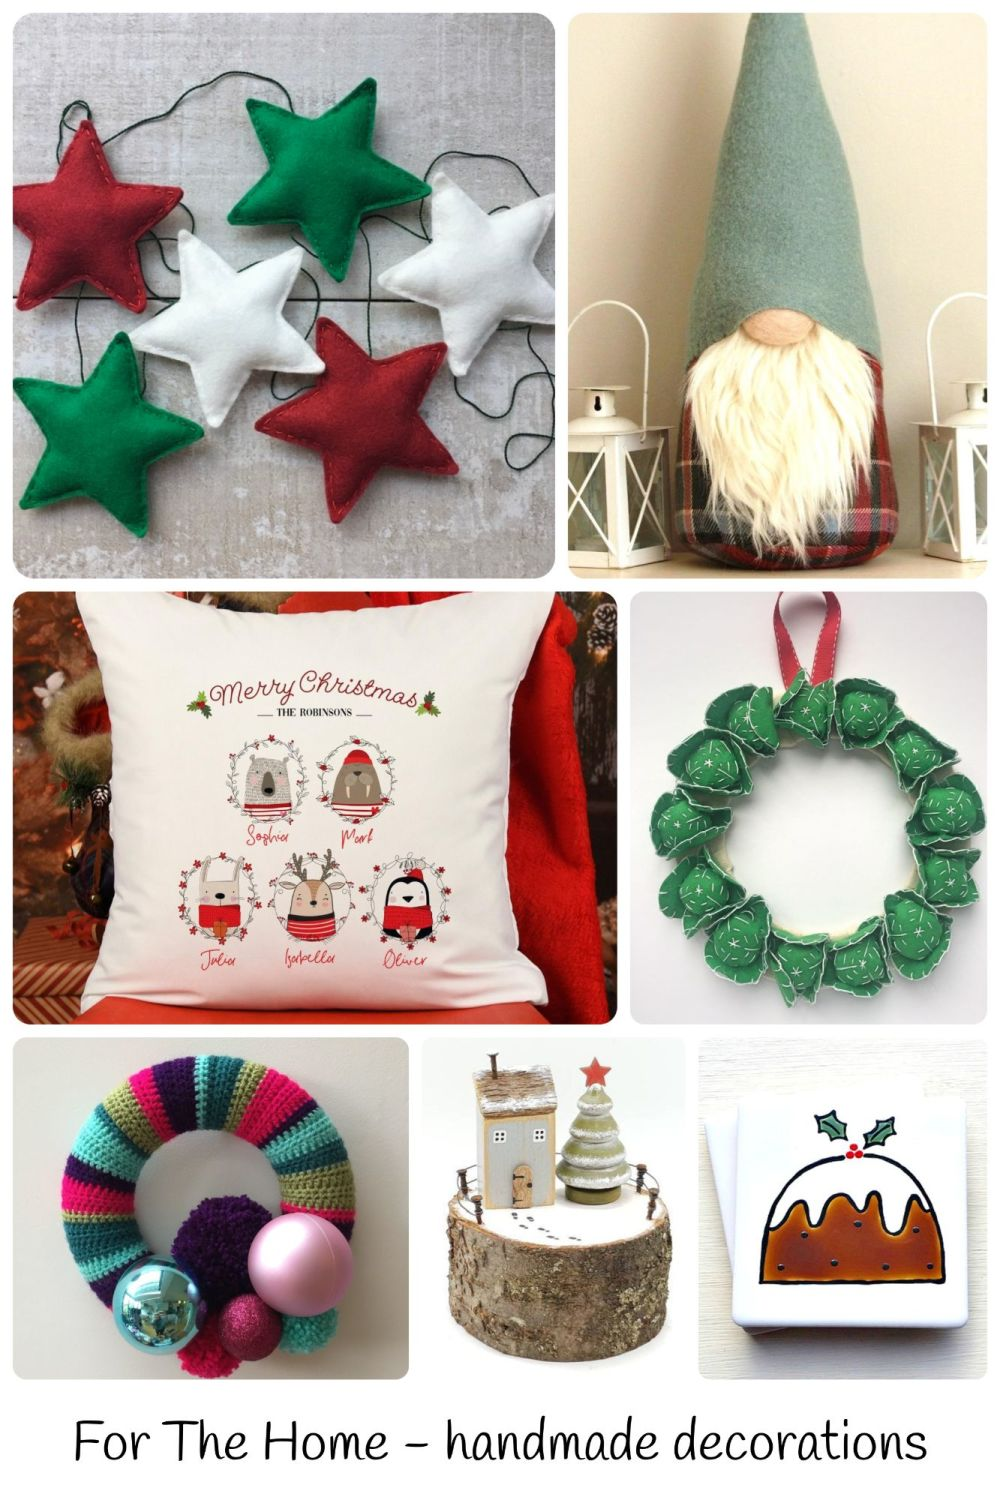 Deck Your Home - U.K handmade christmas decor